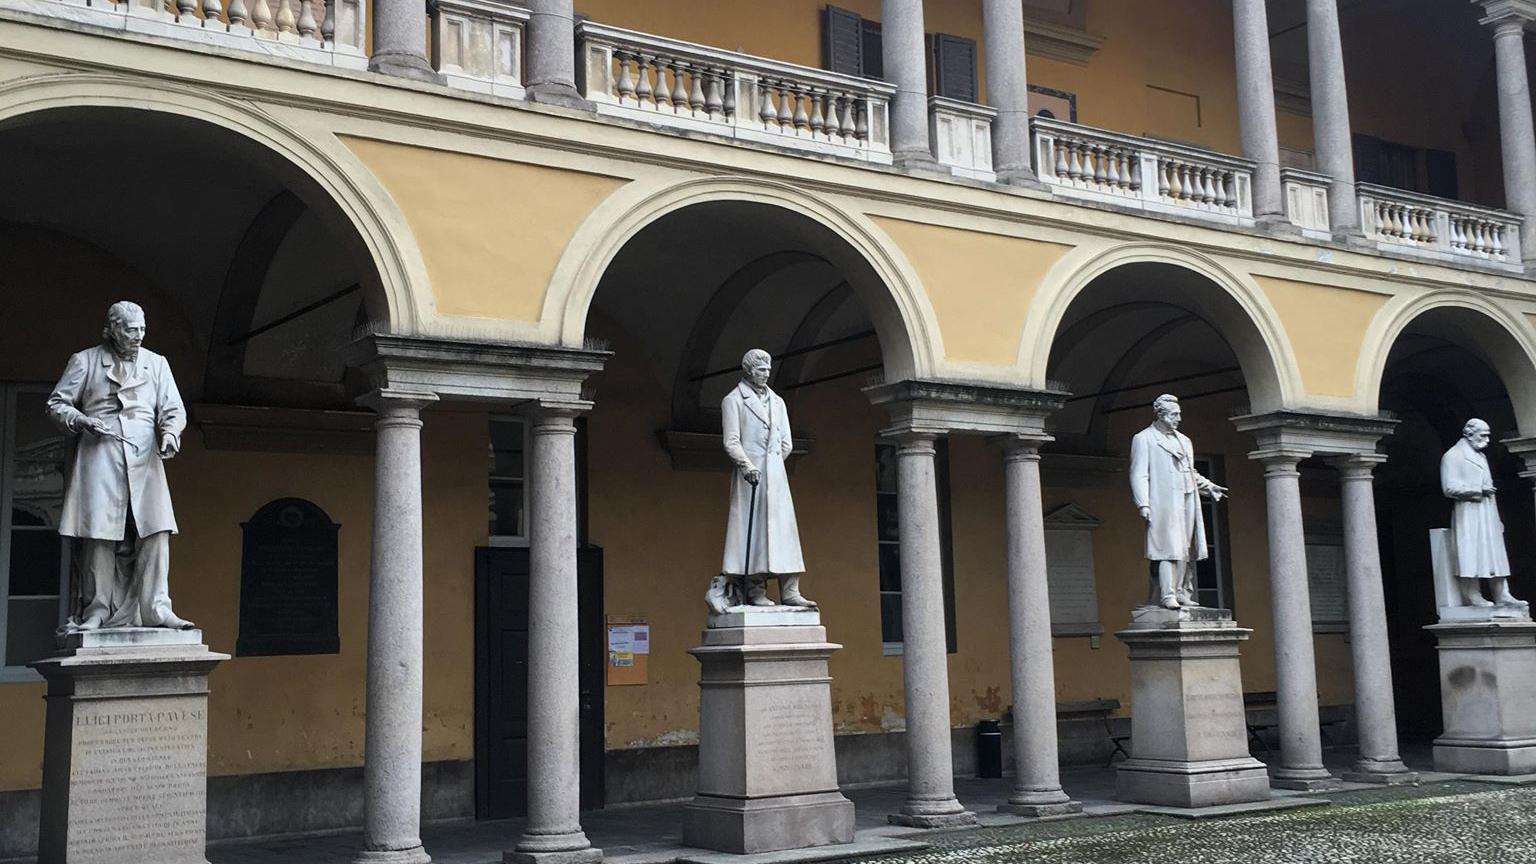 statues in the courtyard of Palazzo Vistarino, the student residence in Pavia